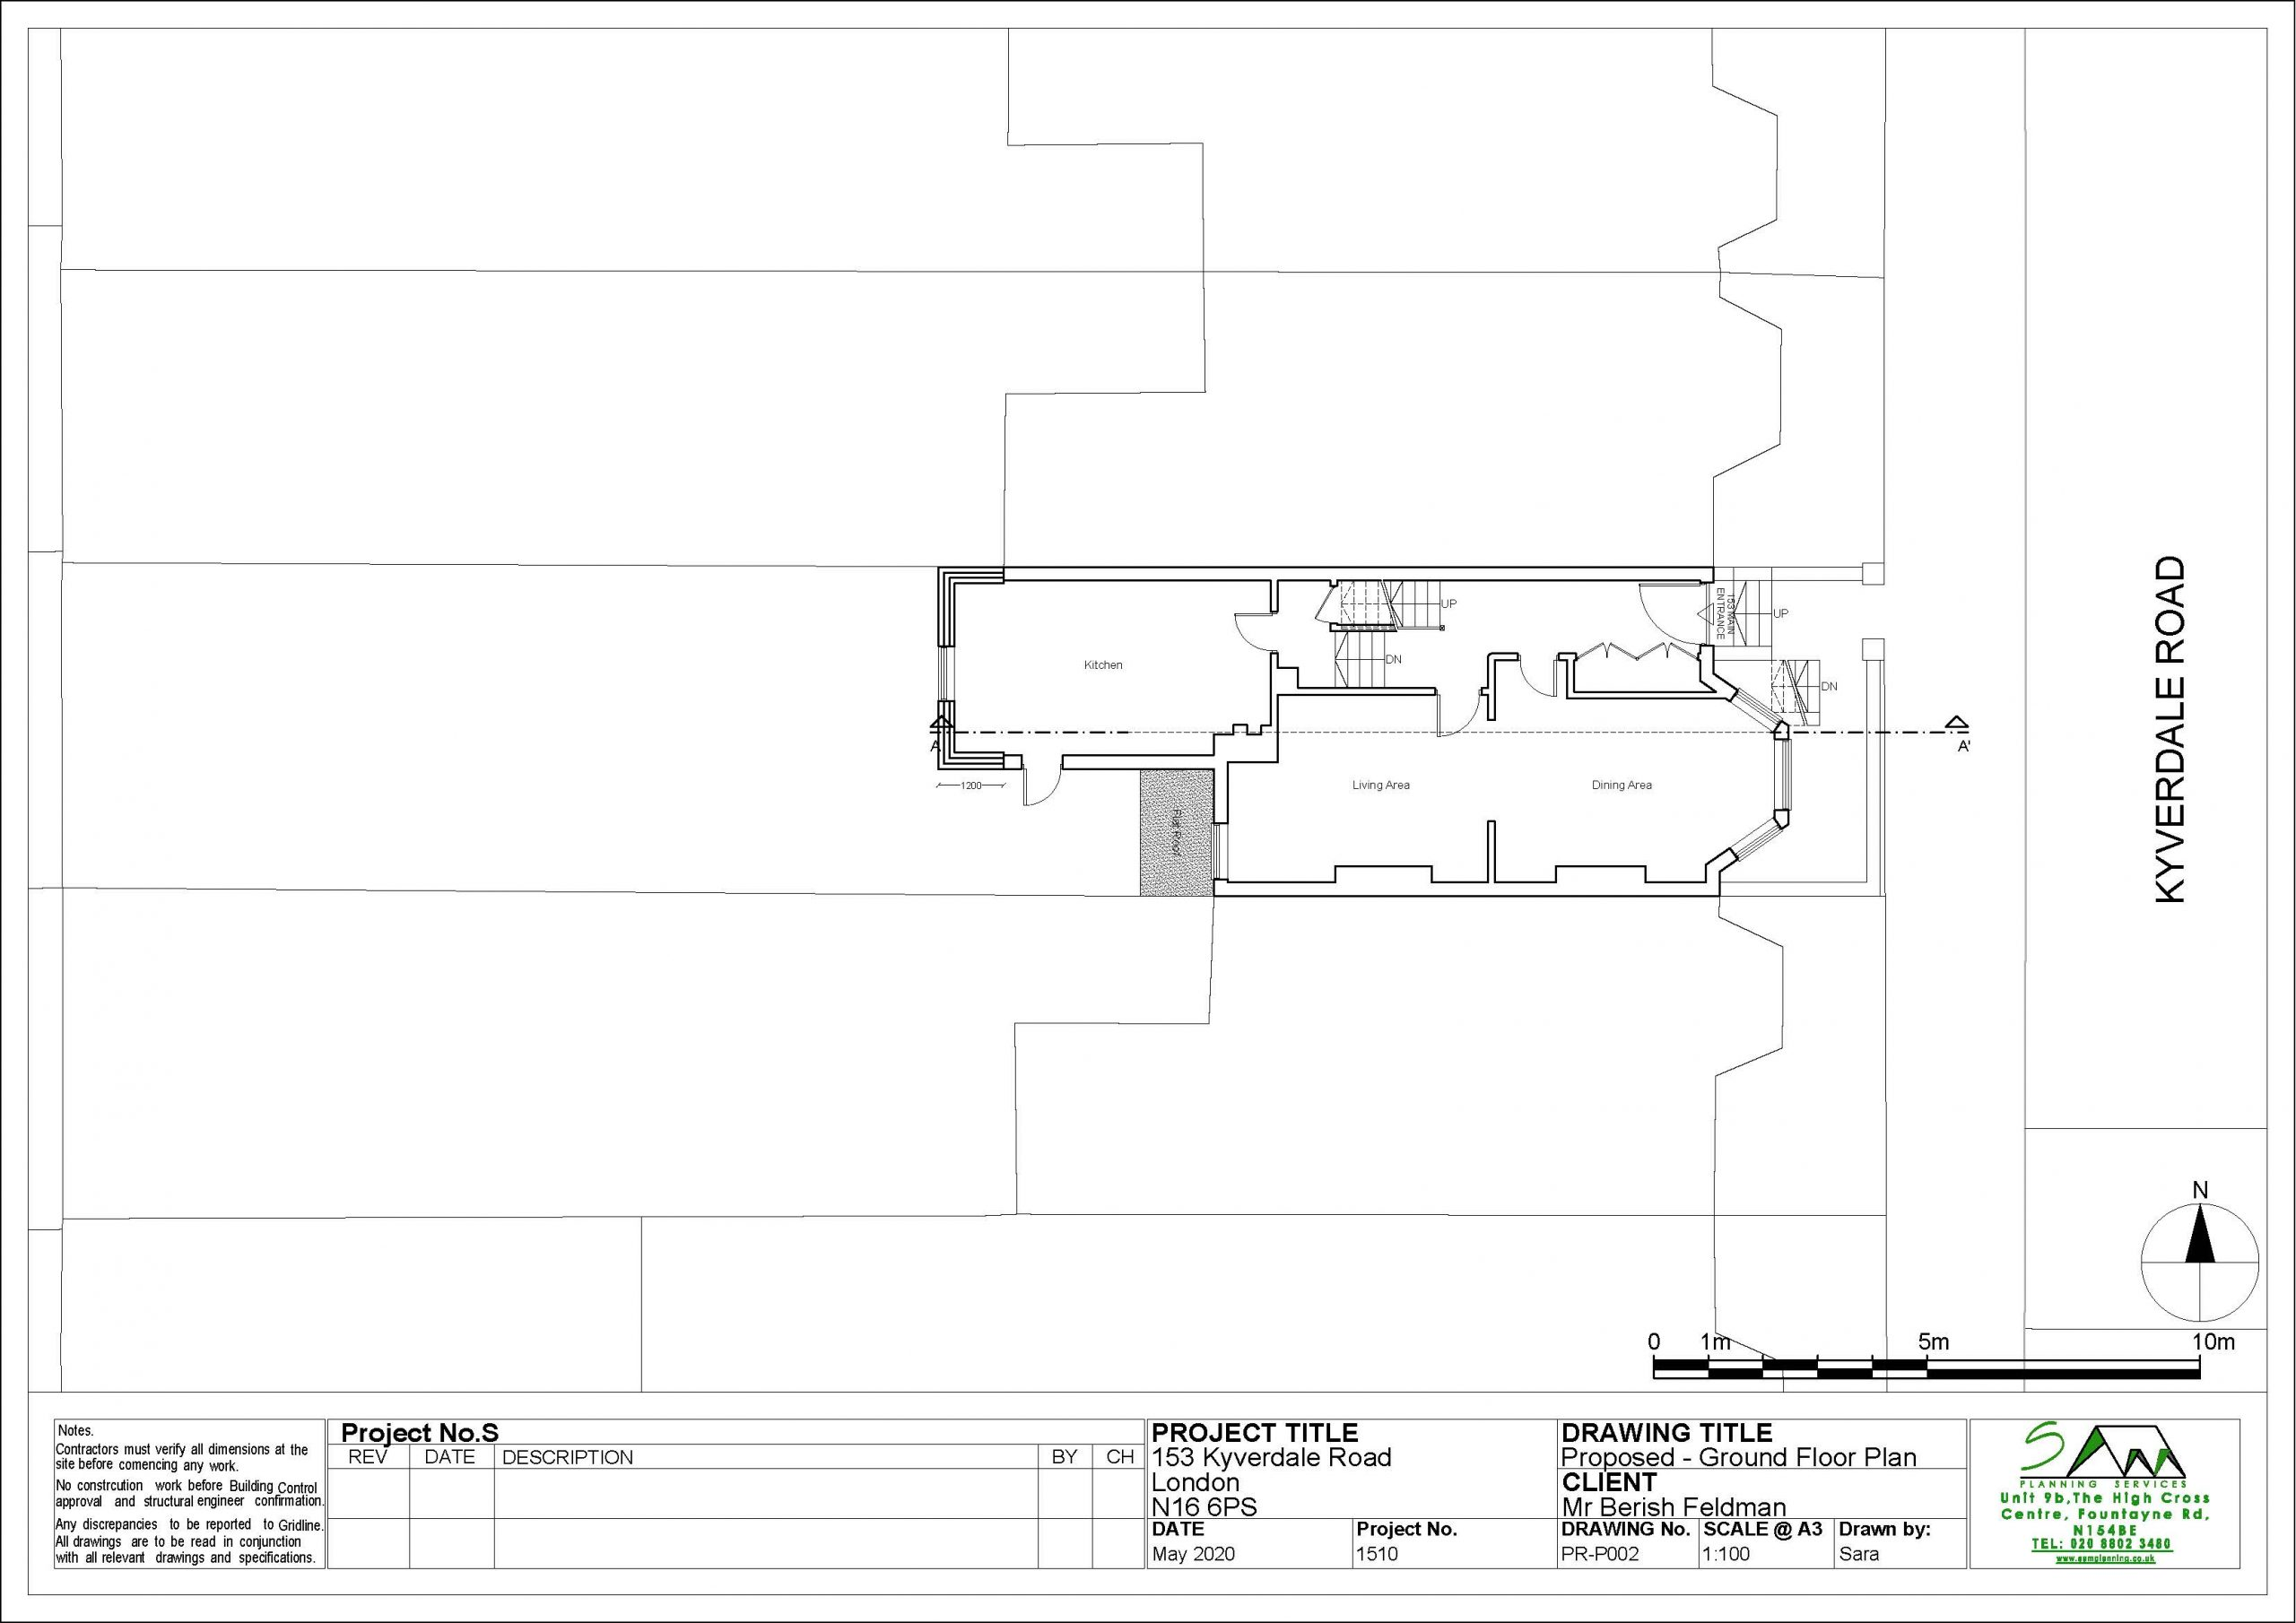 153kyverdaleProposed Ground Floor Plan